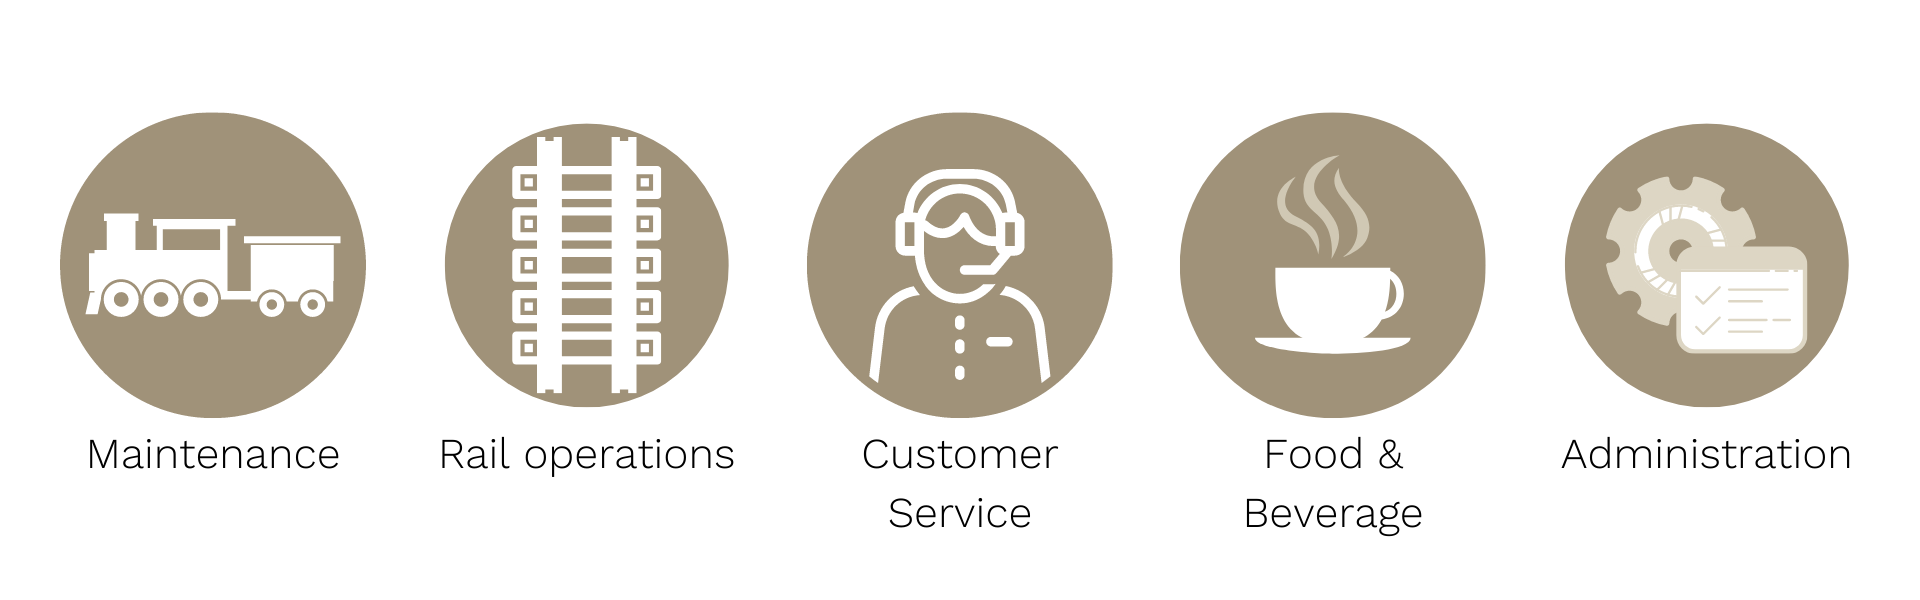 Roles include maintenance, rail operations, customer service, food and beverage and administration